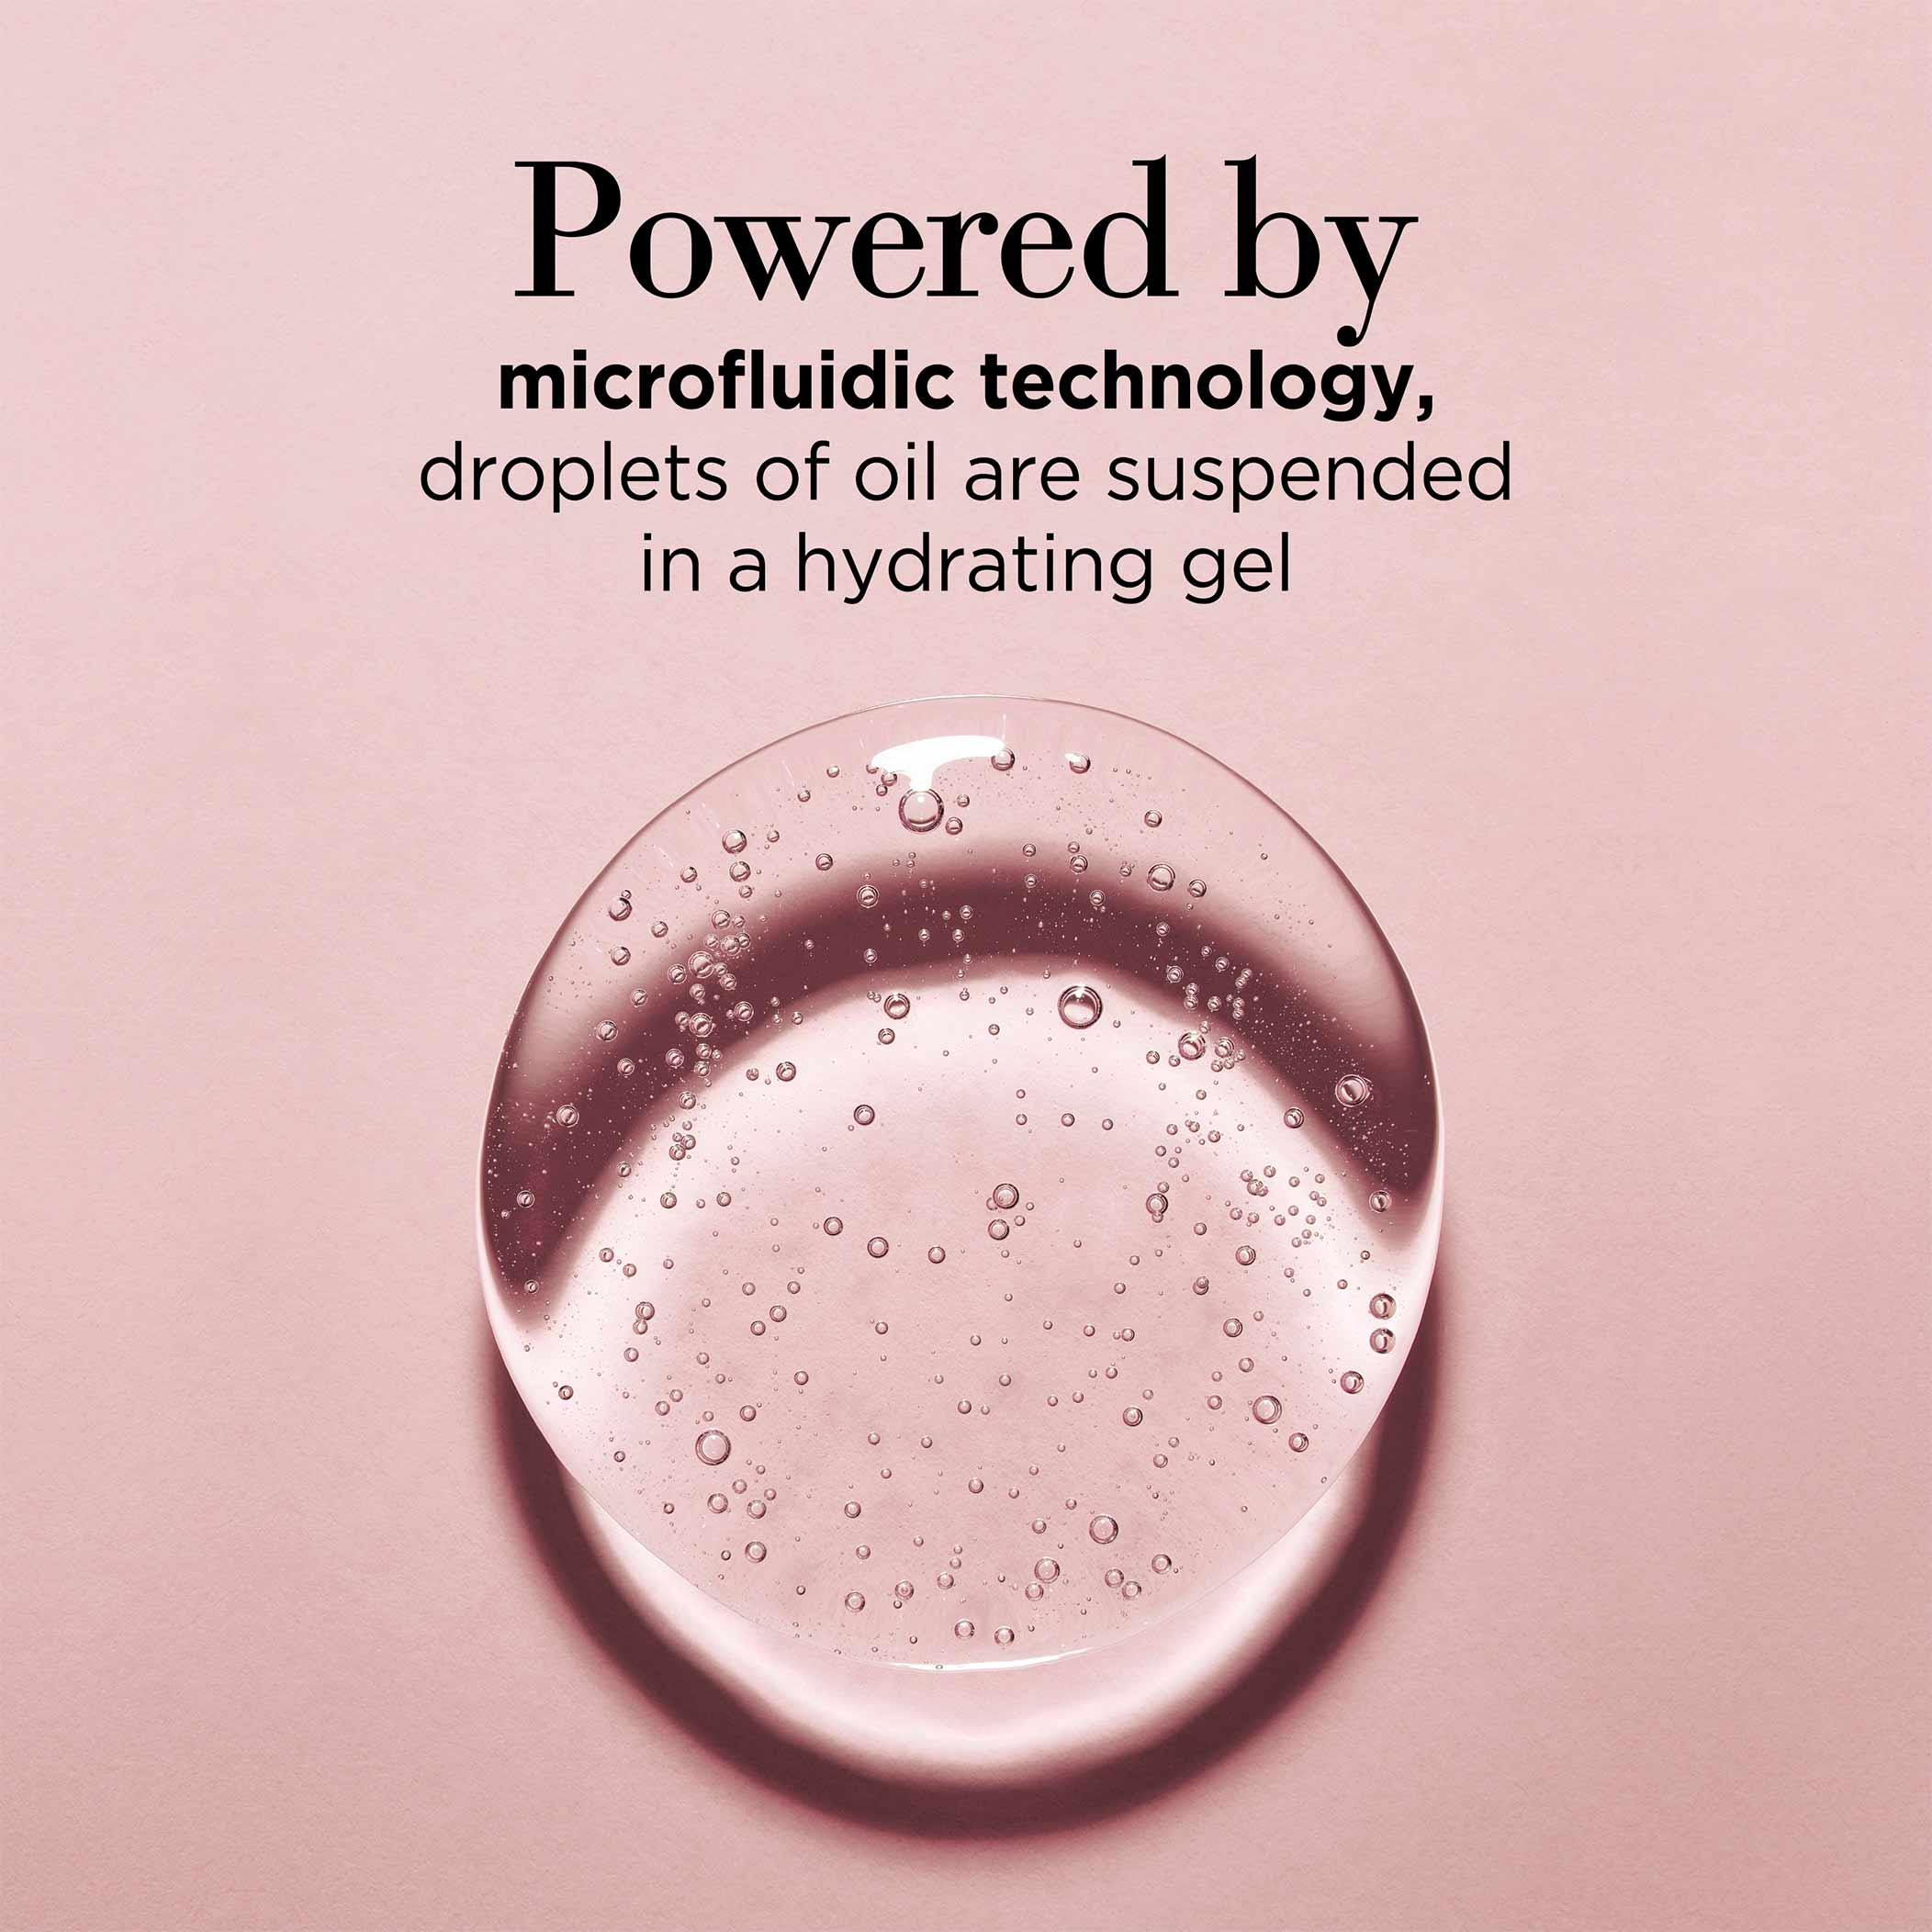 Powered by microfluidic technology, droplets of oil are suspended in a hydrating gel